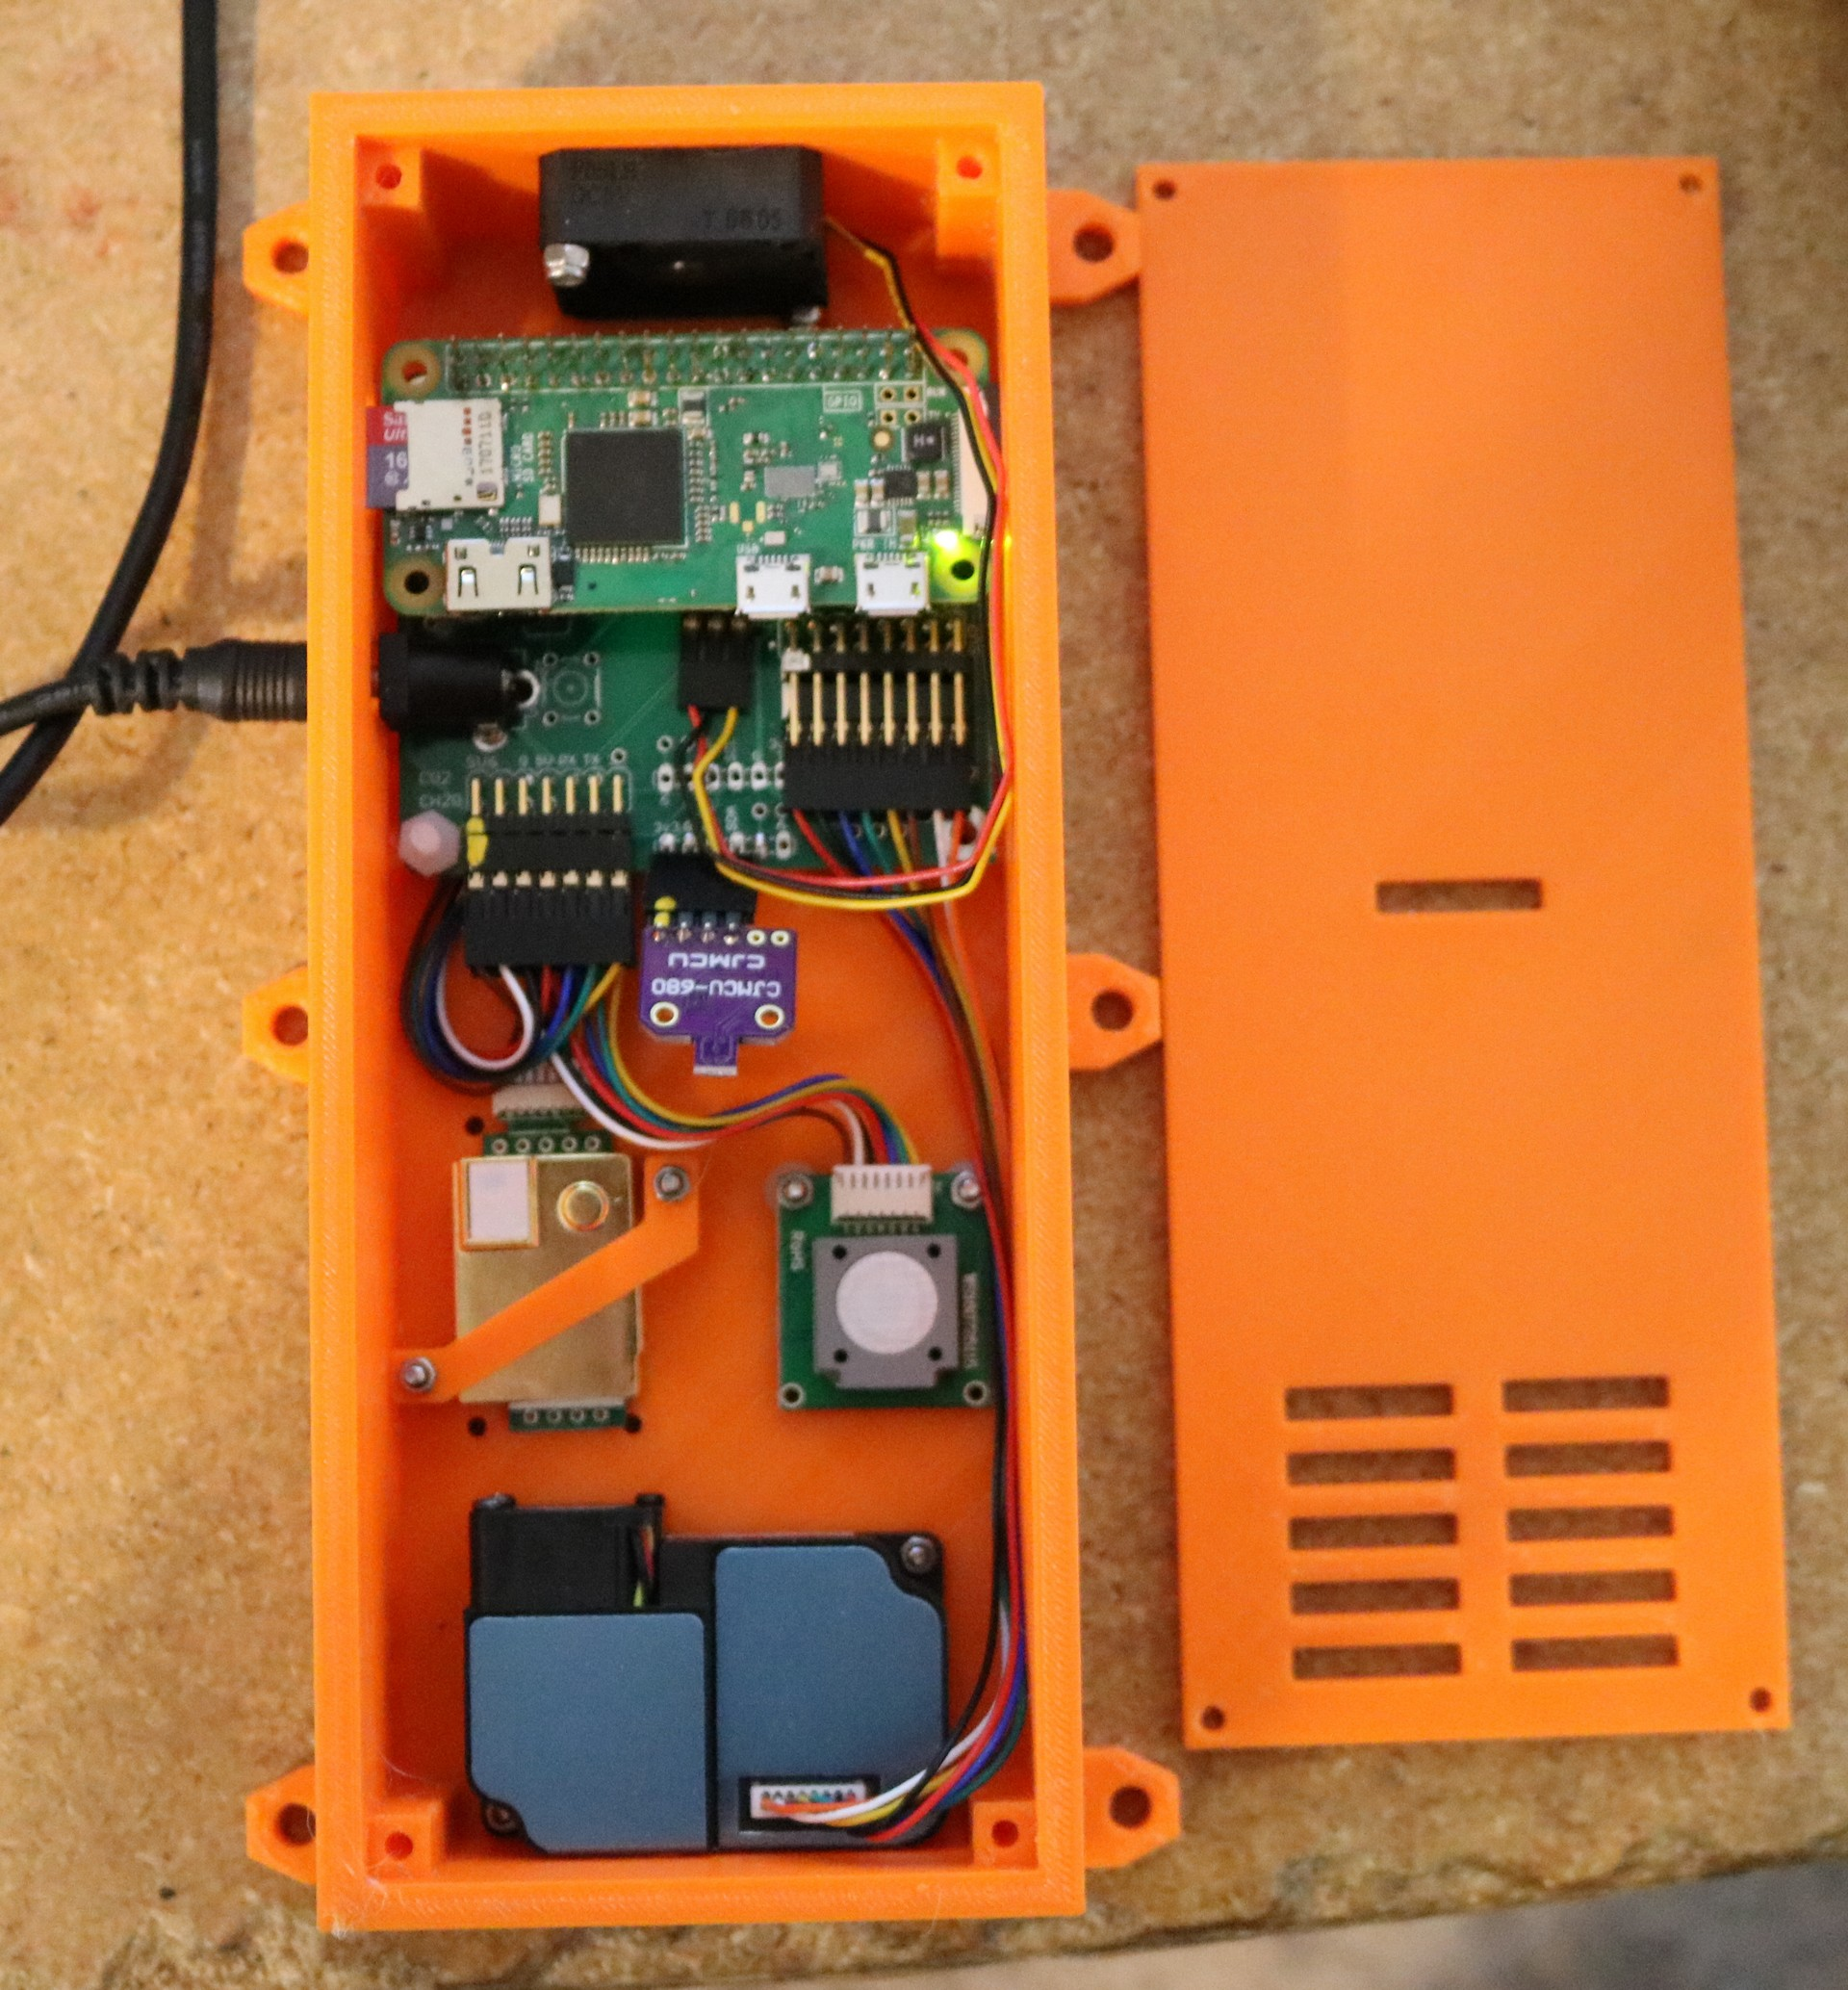 Raspberry pi based indoor air quality monitor - Dr  Scott M